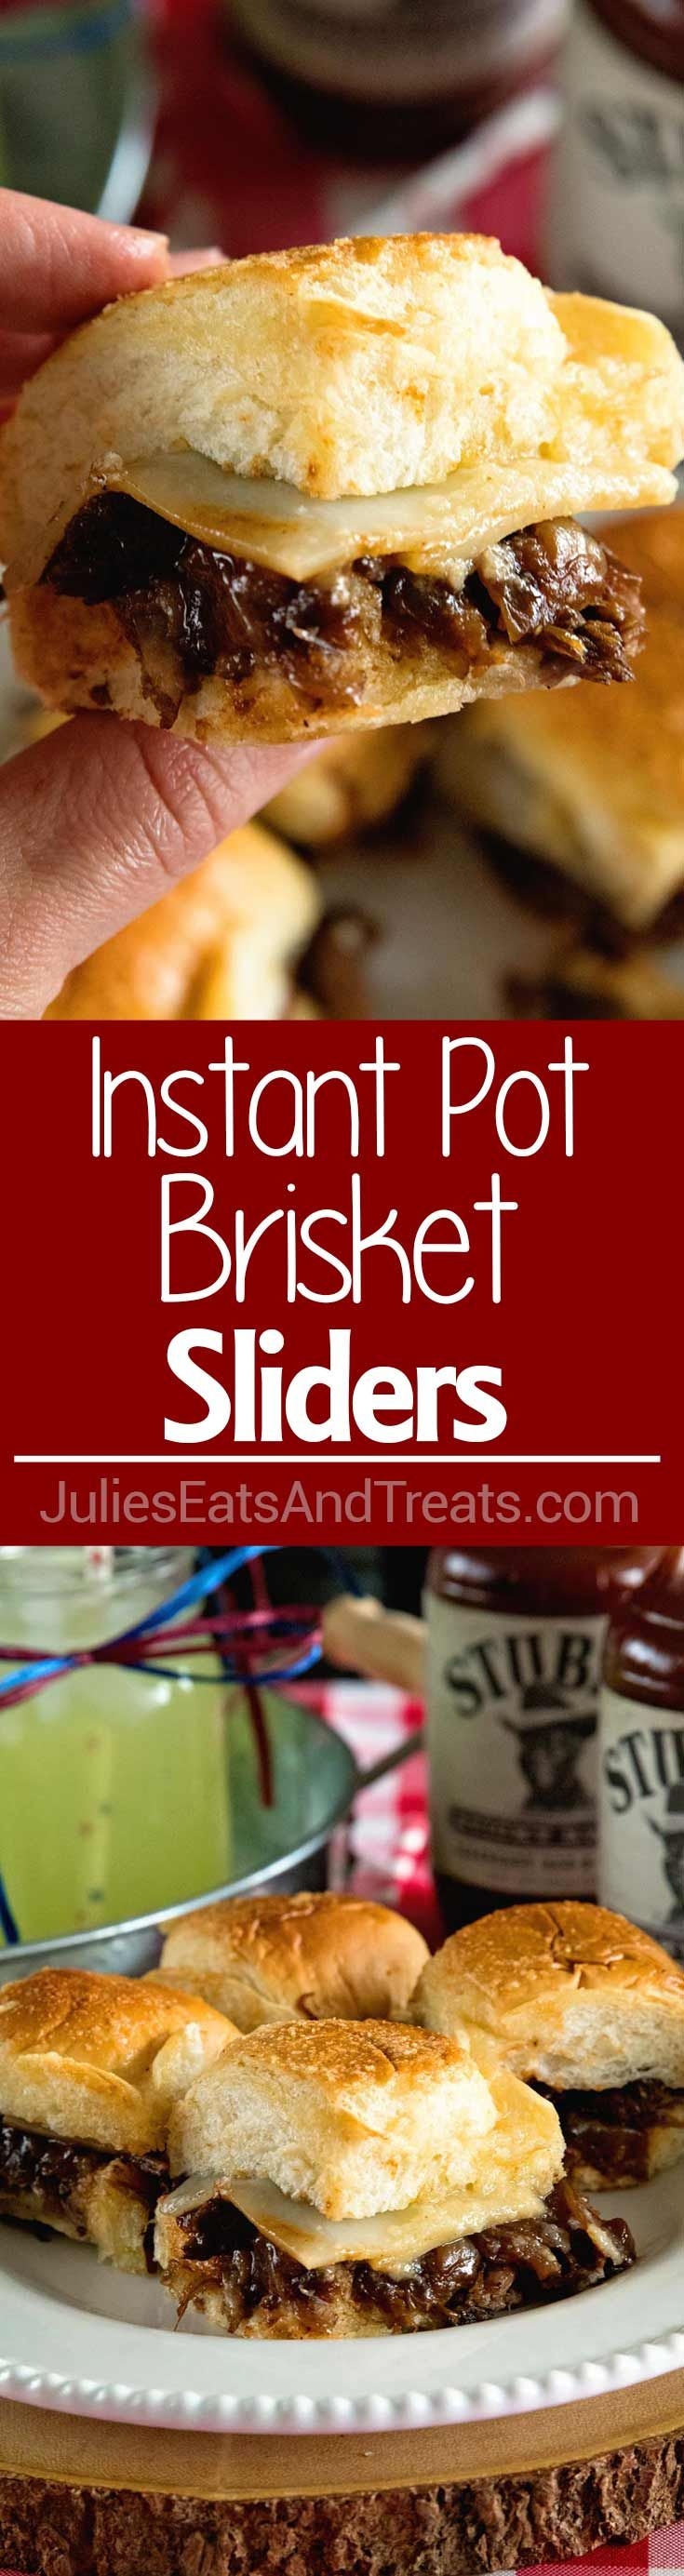 Instant Pot Brisket Sliders with Caramelized Onions ~ Tender, Shredded Brisket Cooked in Your Instant Pot. Stuffed into Sliders Then Topped with Caramelized Onions and Cheese! Perfect Finger Food for Parties! ~ https://www.julieseatsandtreats.com